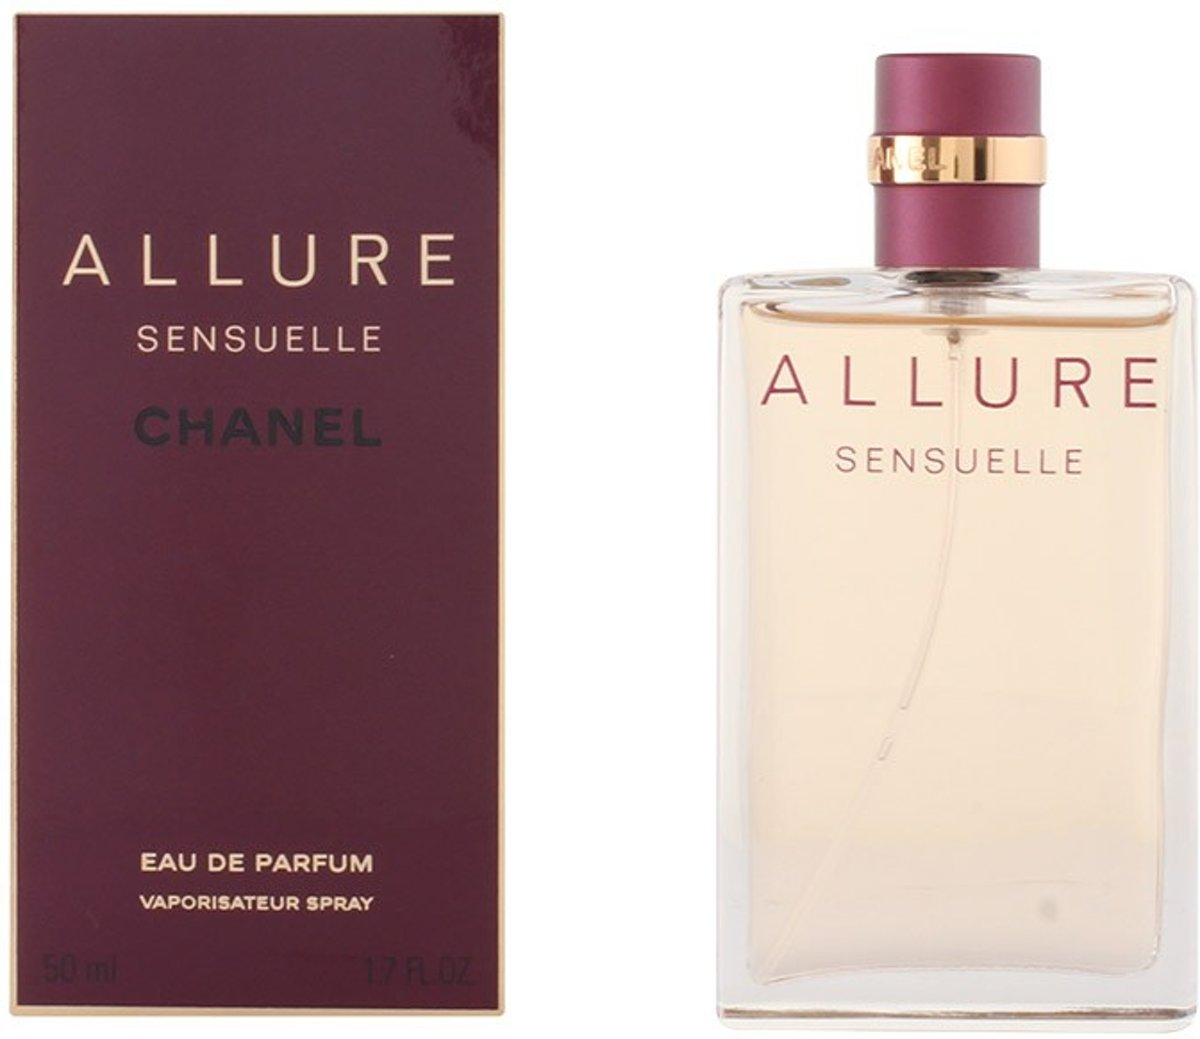 MULTI BUNDEL 2 stuks ALLURE SENSUELLE Eau de Perfume Spray 50 ml